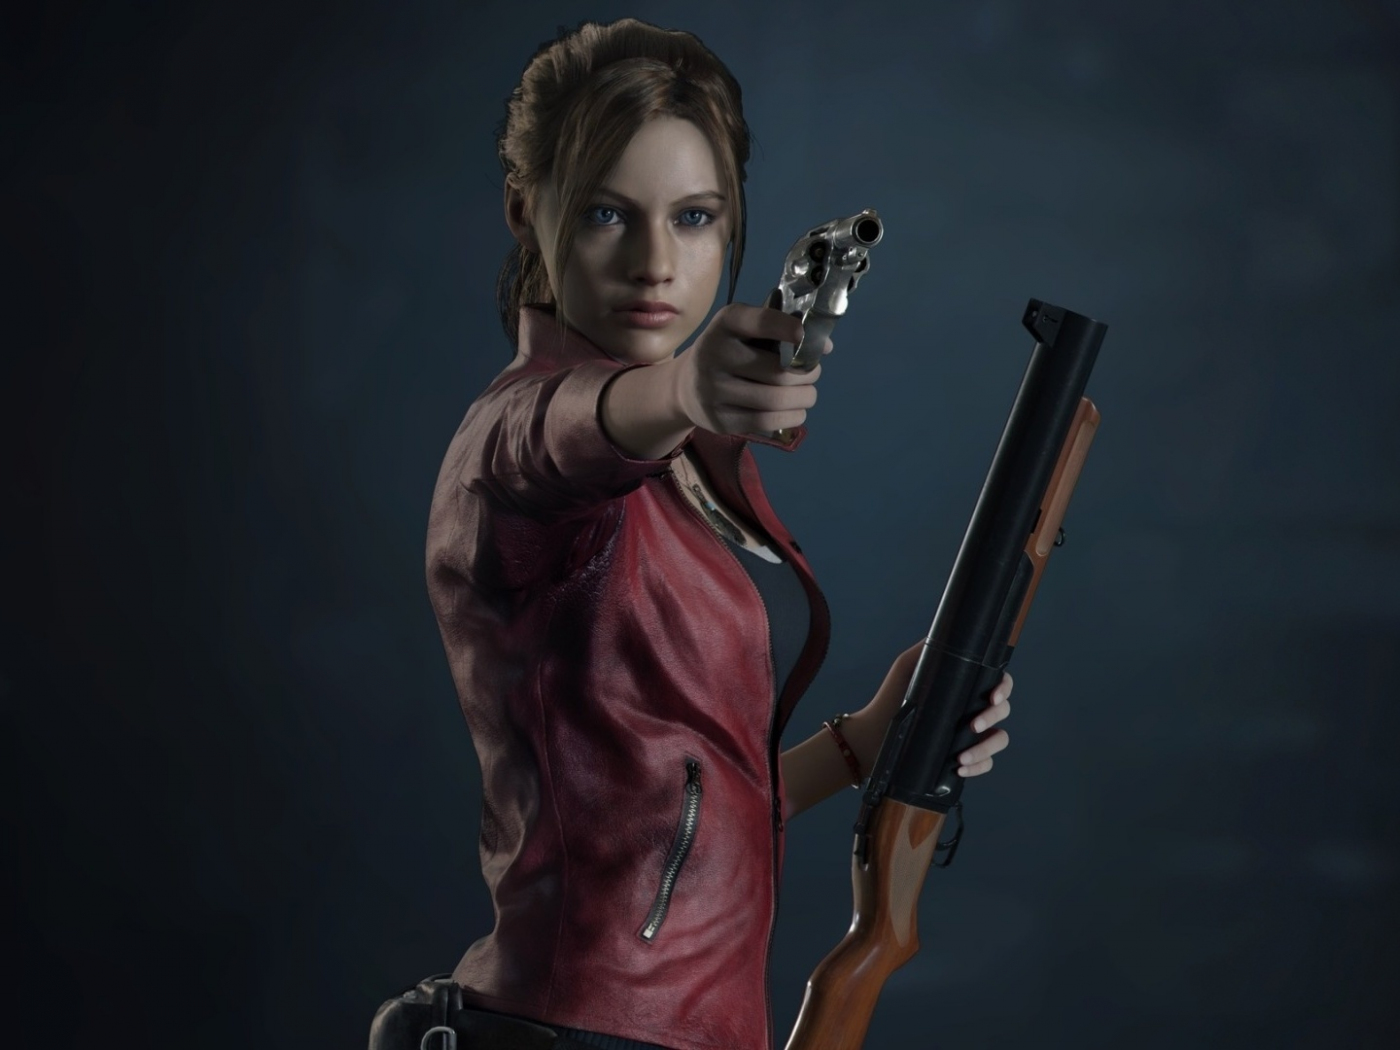 Resident Evil 2, video game, Claire Redfield, 1400x1050 wallpaper